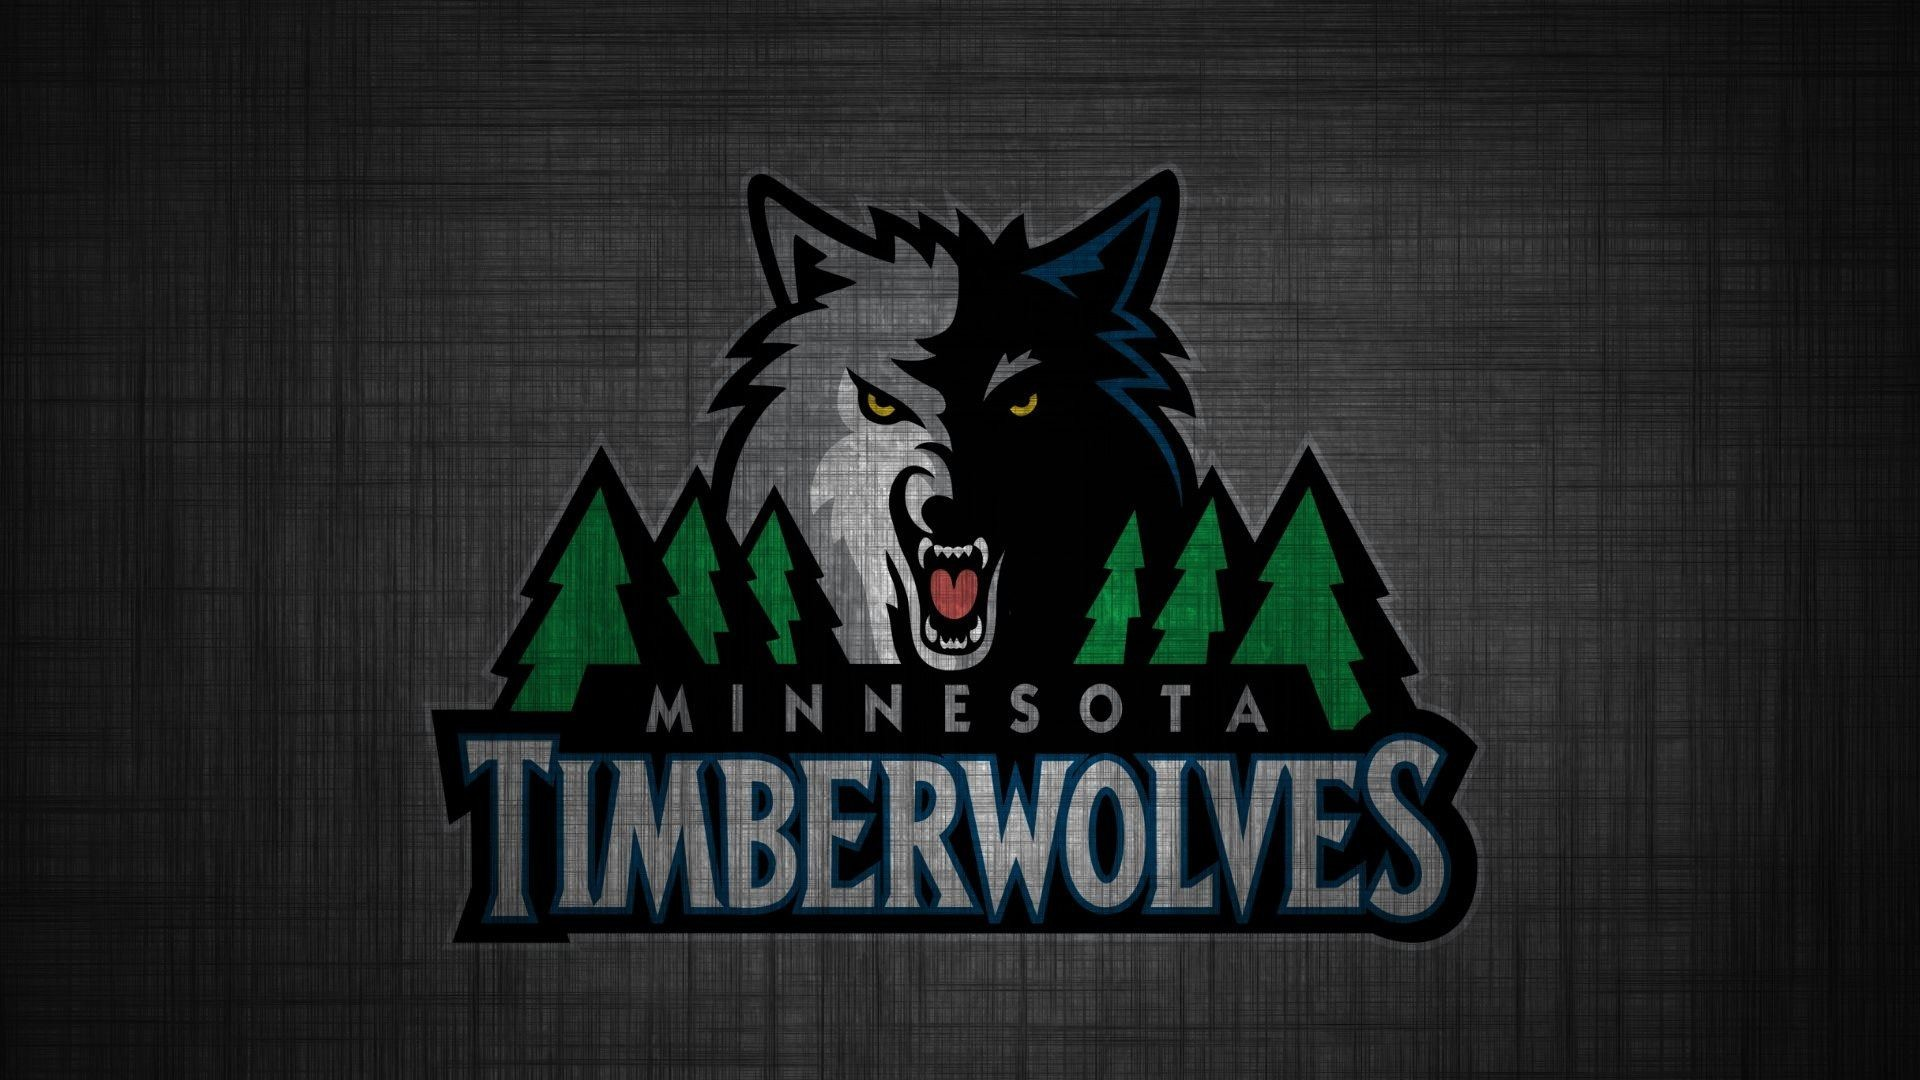 71 Minnesota Timberwolves Wallpapers on WallpaperPlay 1920x1080